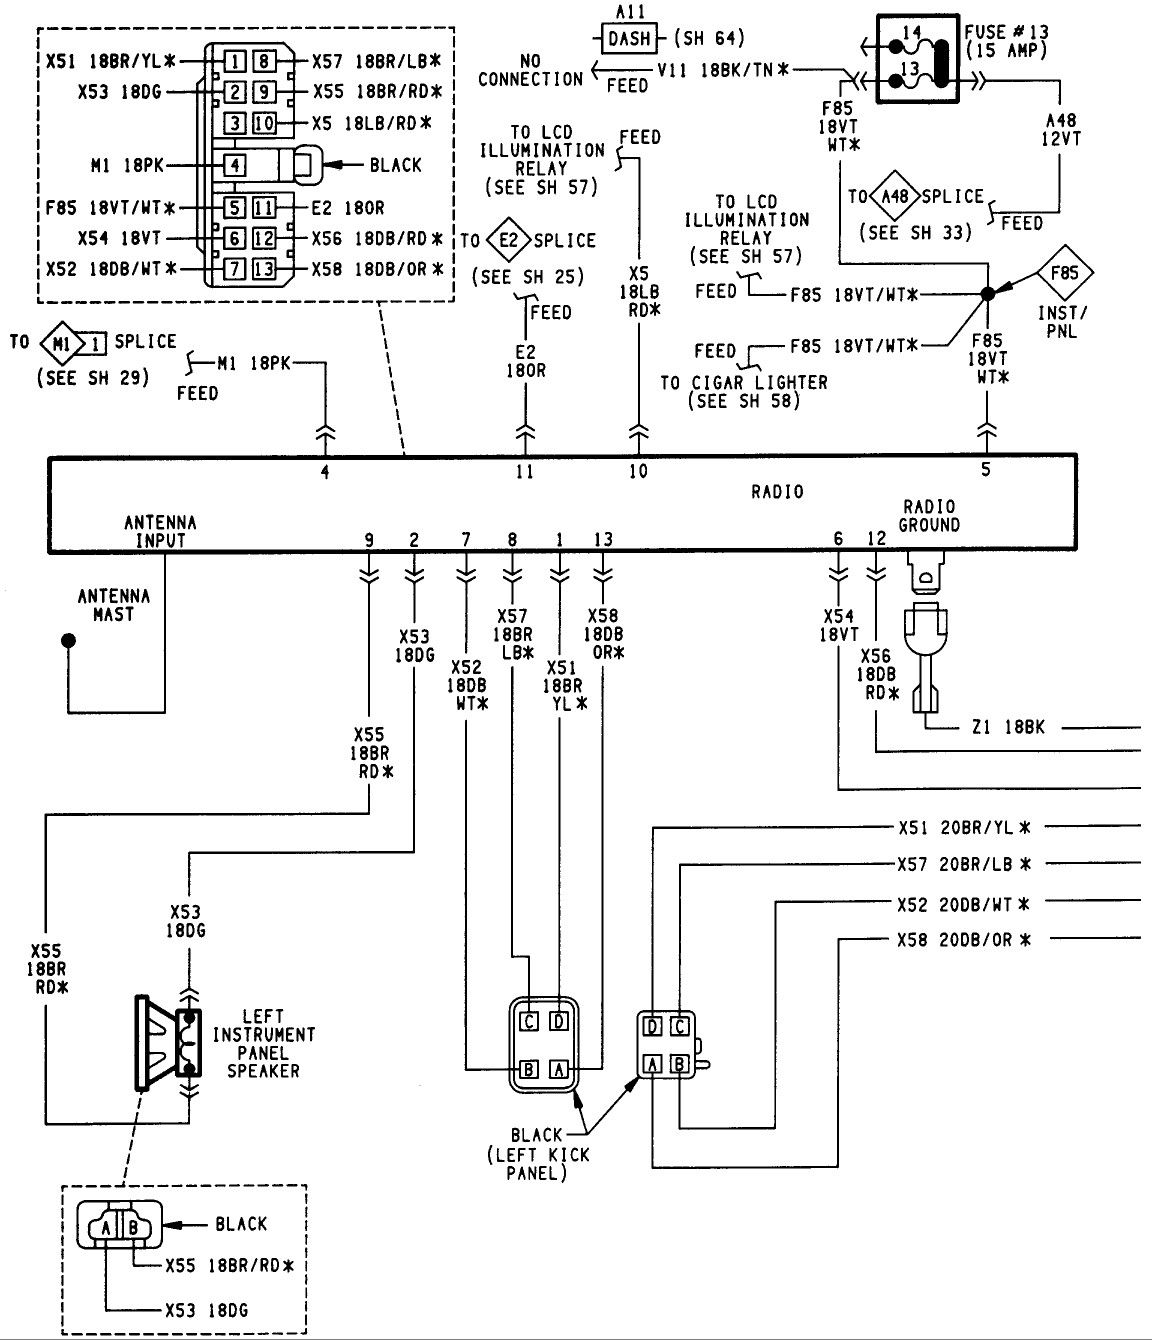 unique 2006 jeep grand cherokee radio wiring diagram in 2020 | 2006 jeep  grand cherokee, jeep grand cherokee, jeep grand  pinterest